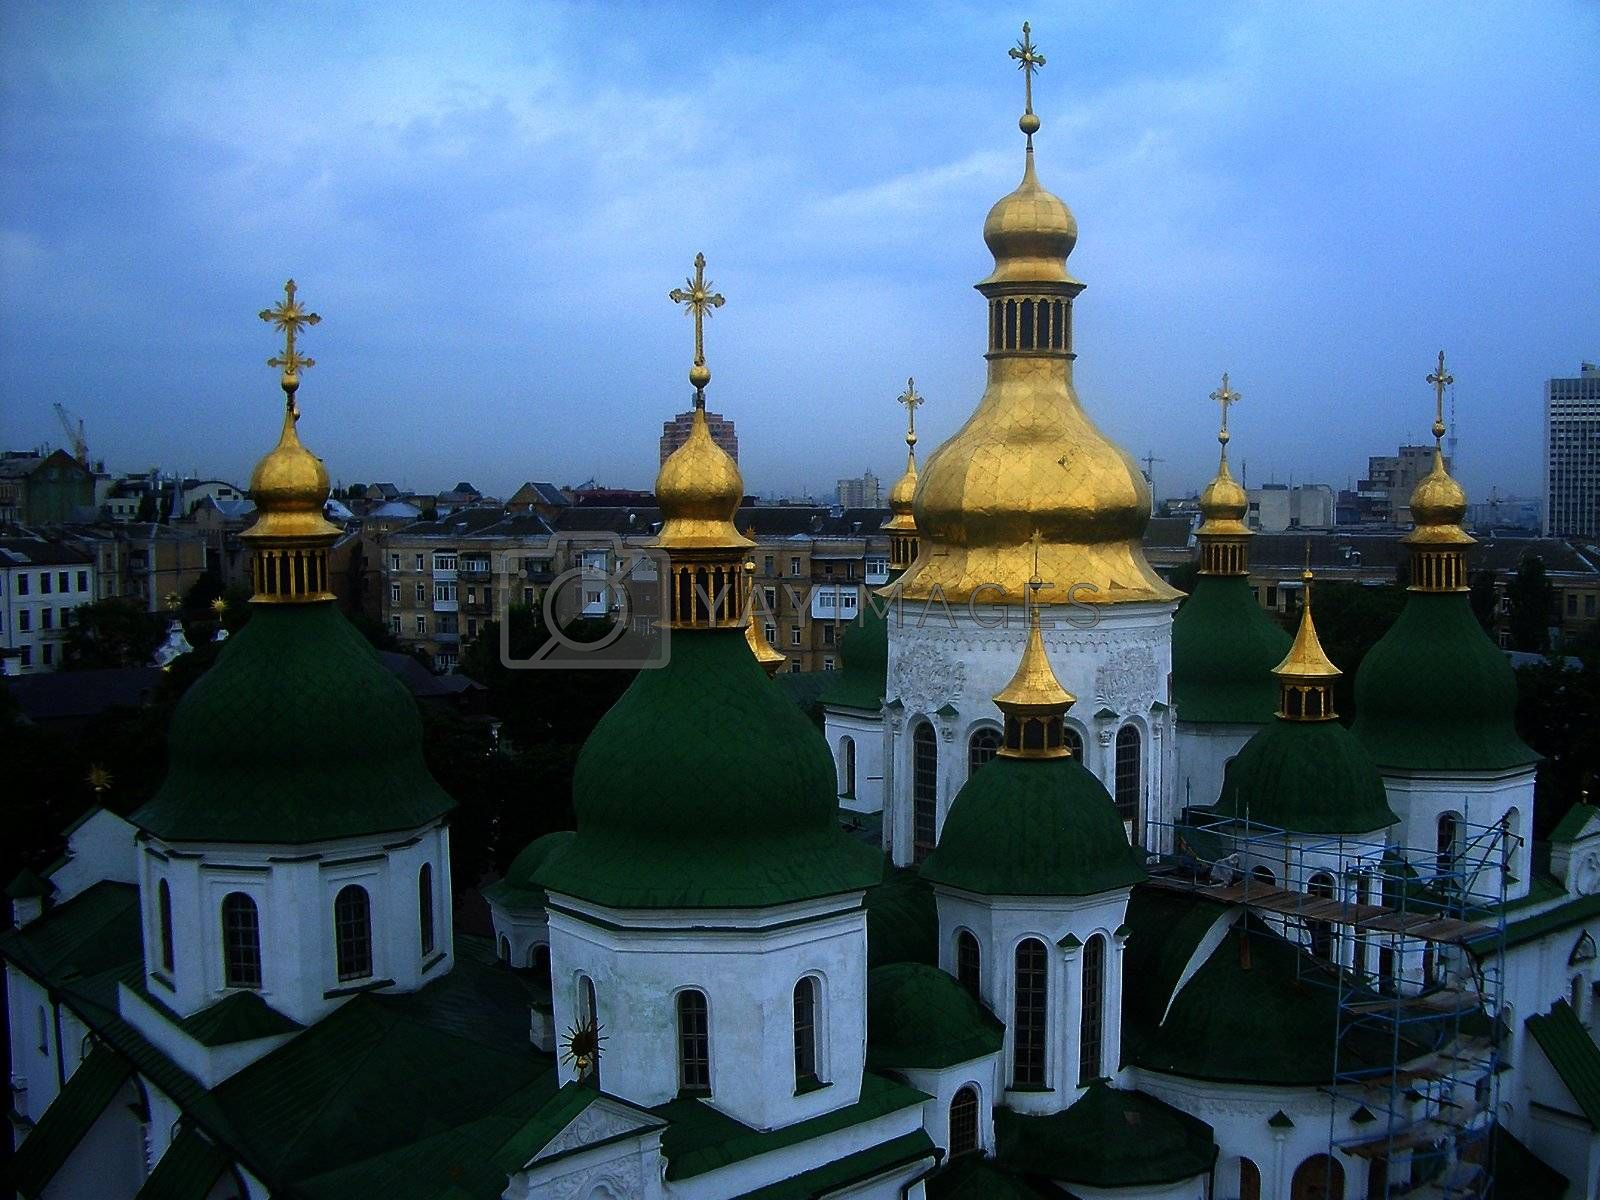 Green and golden domes of St. Sophia's Cathedral in Kiev, Ukraine